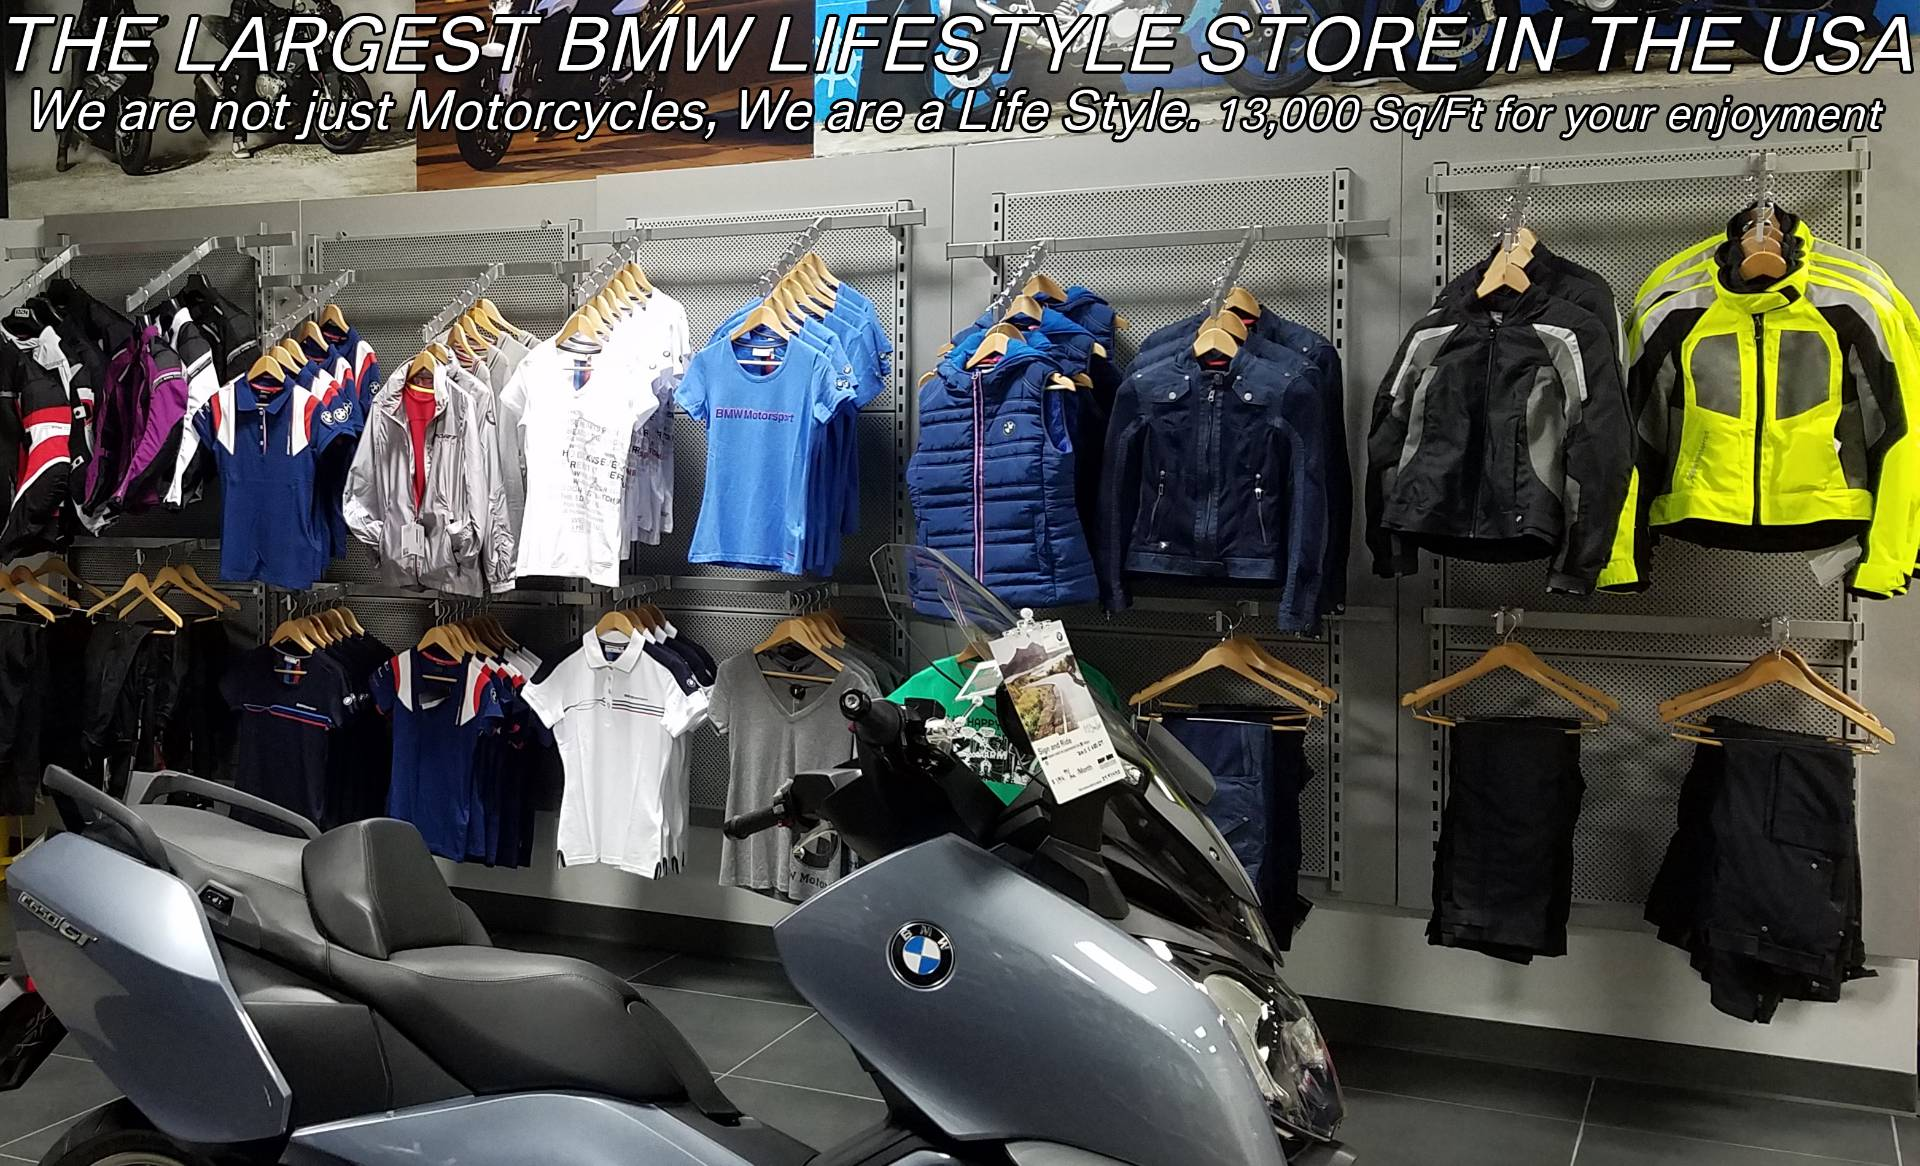 New 2019 BMW G 310 GS for sale, BMW G 310GS for sale, BMW Motorcycle GS, new BMW GS, Spirit of GS, BMW Motorcycles of Miami, Motorcycles of Miami, Motorcycles Miami, New Motorcycles, Used Motorcycles, pre-owned. #BMWMotorcyclesOfMiami #MotorcyclesOfMiami. - Photo 21